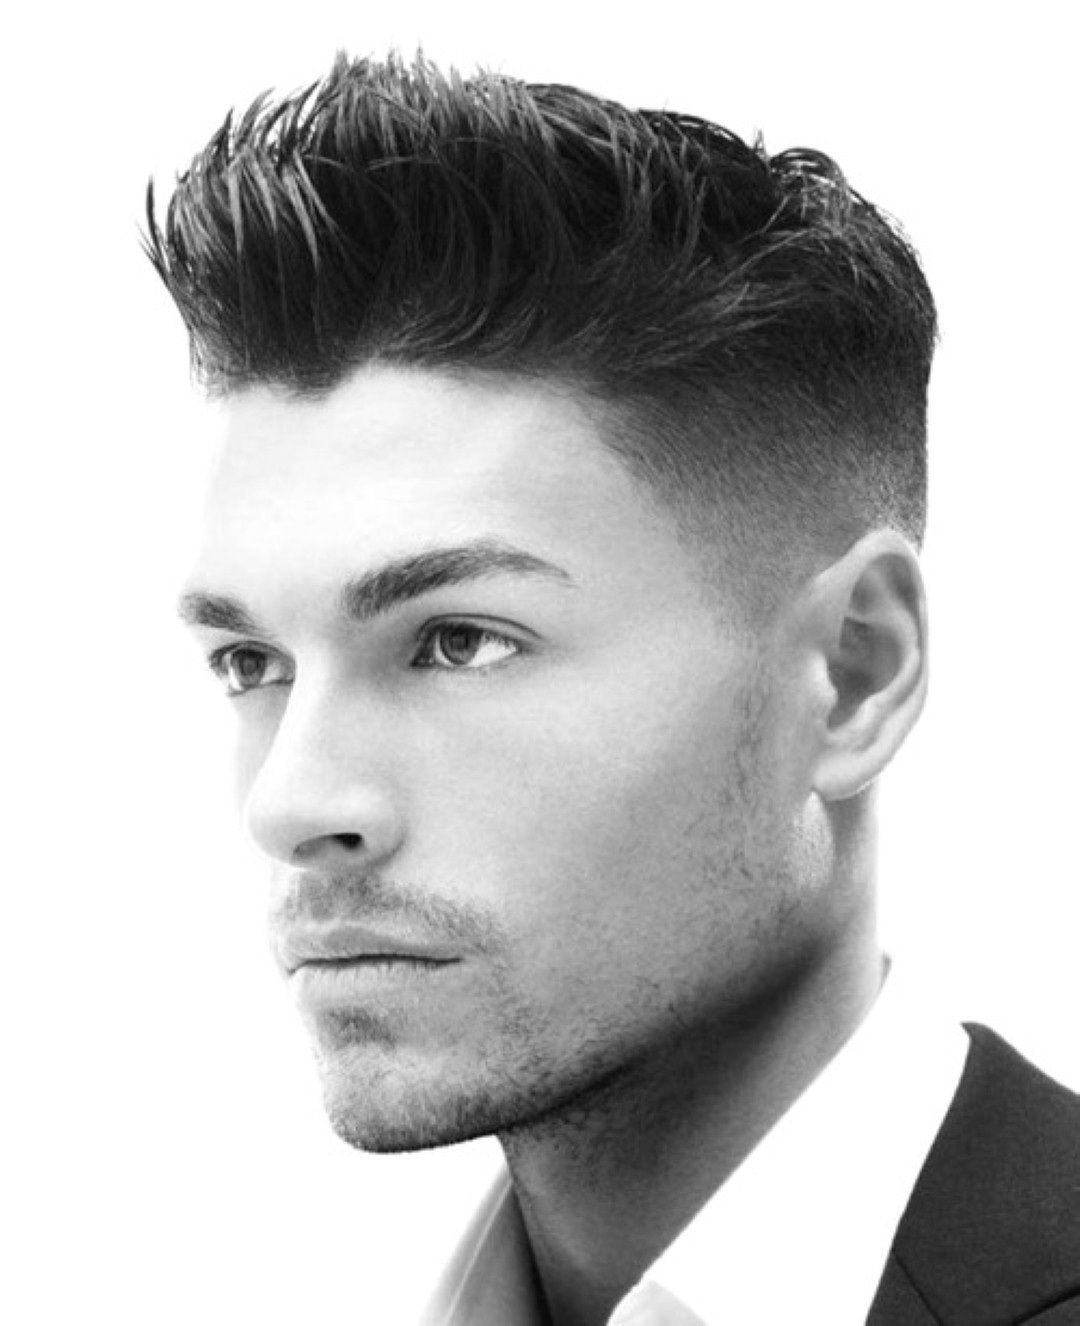 Hairstyles with quiff - Quiff Hairstyle Glamorhairstyles Com Quiff Hairstyle Glamorhairstyles Com